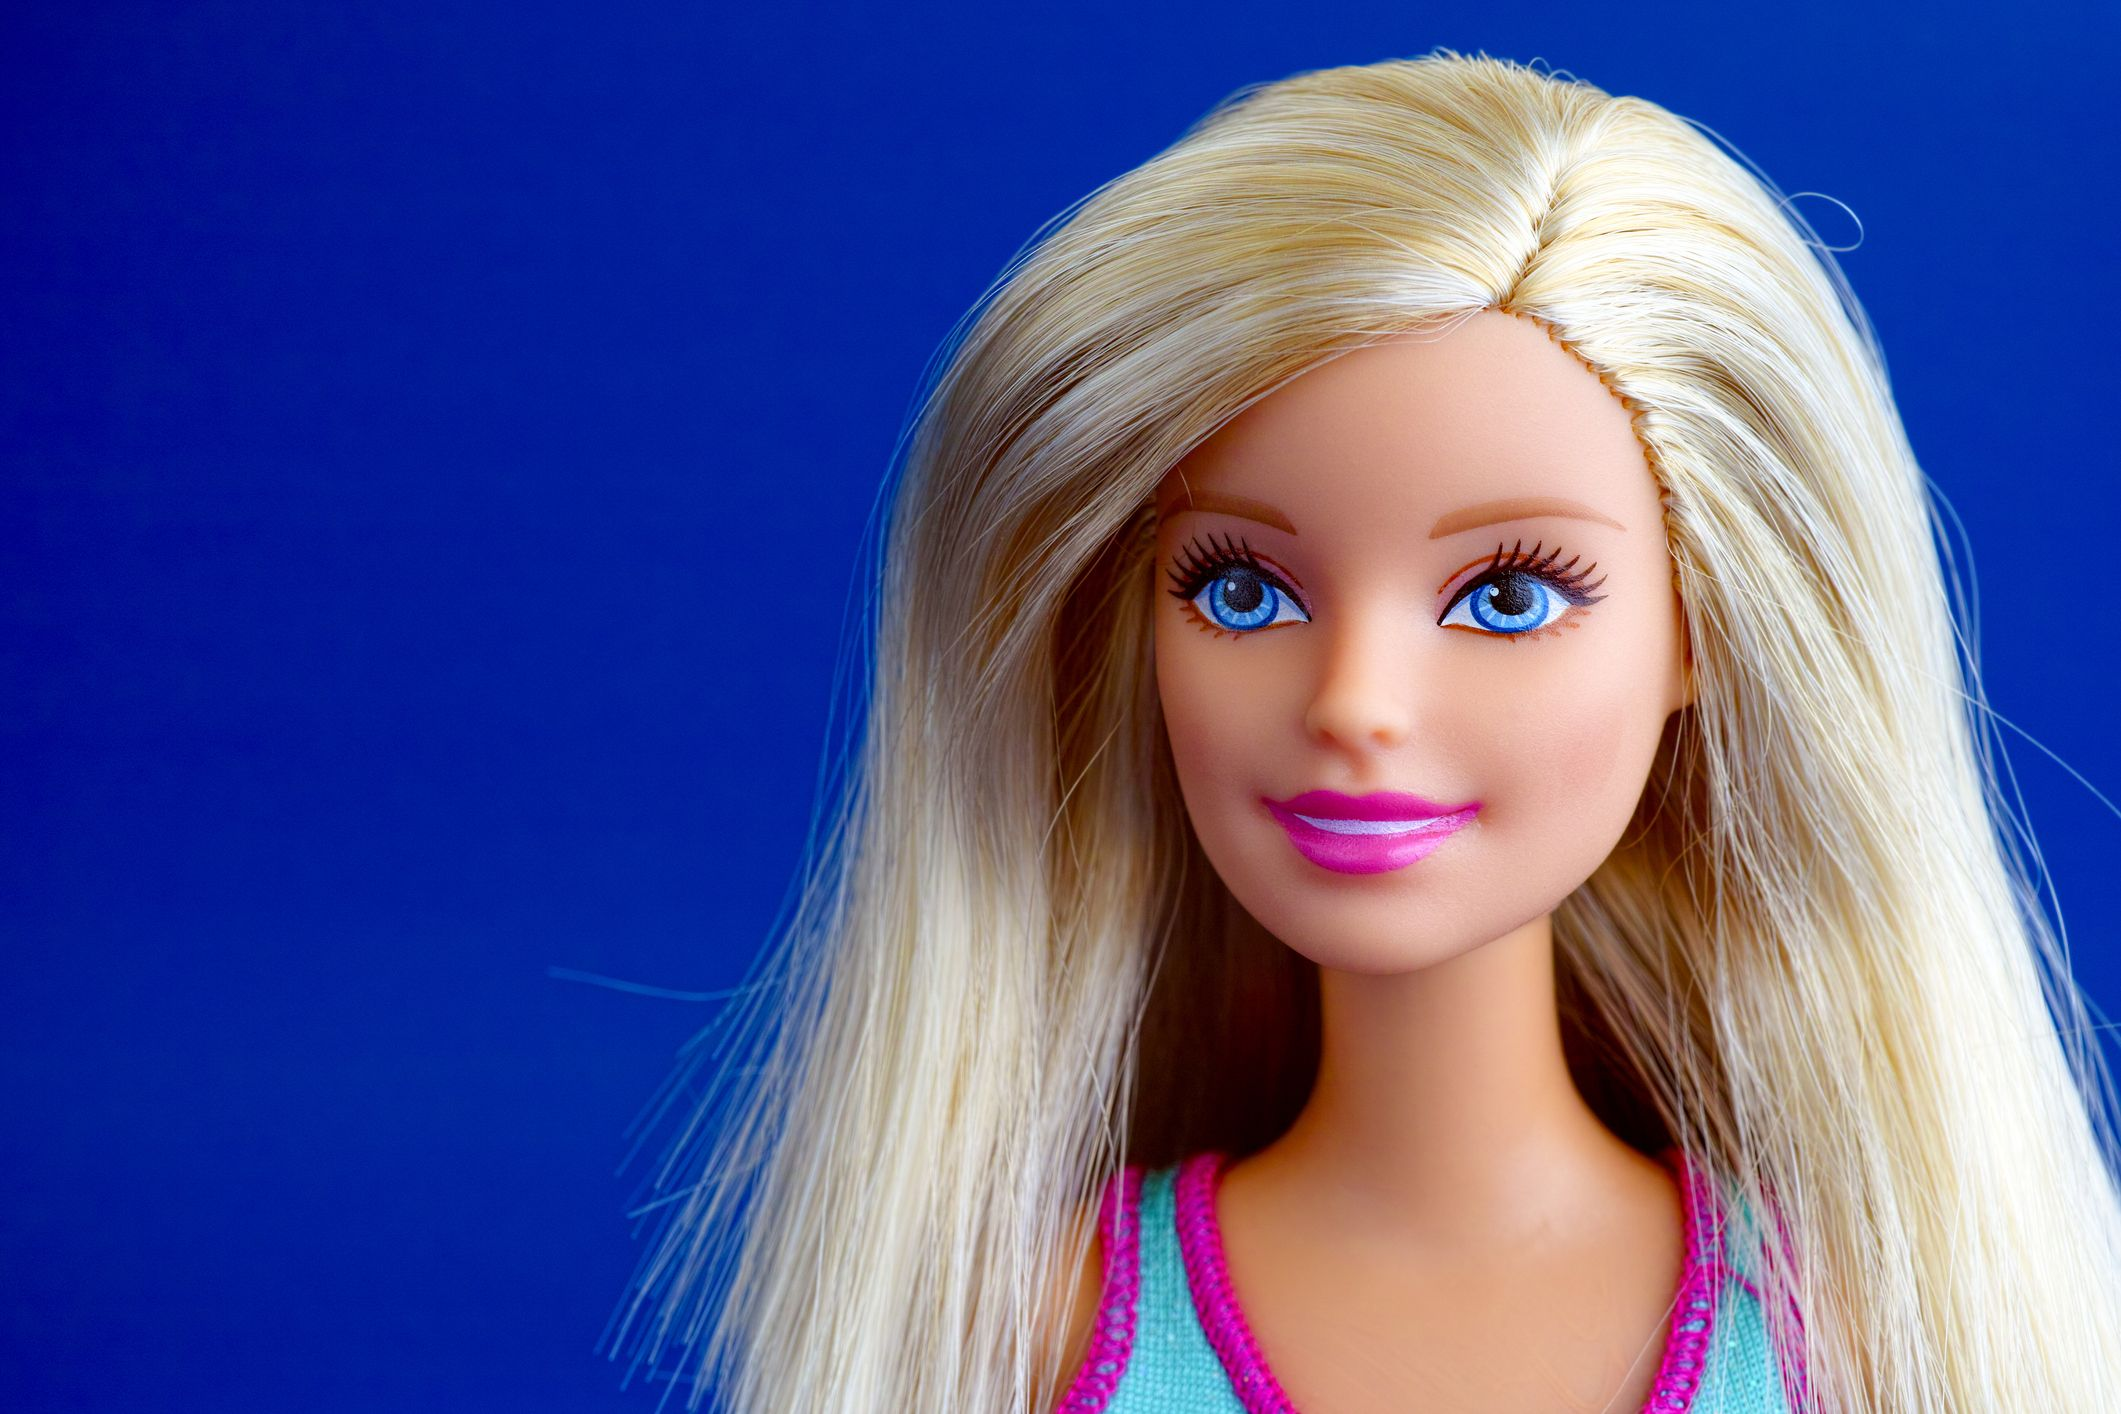 40 barbie doll facts